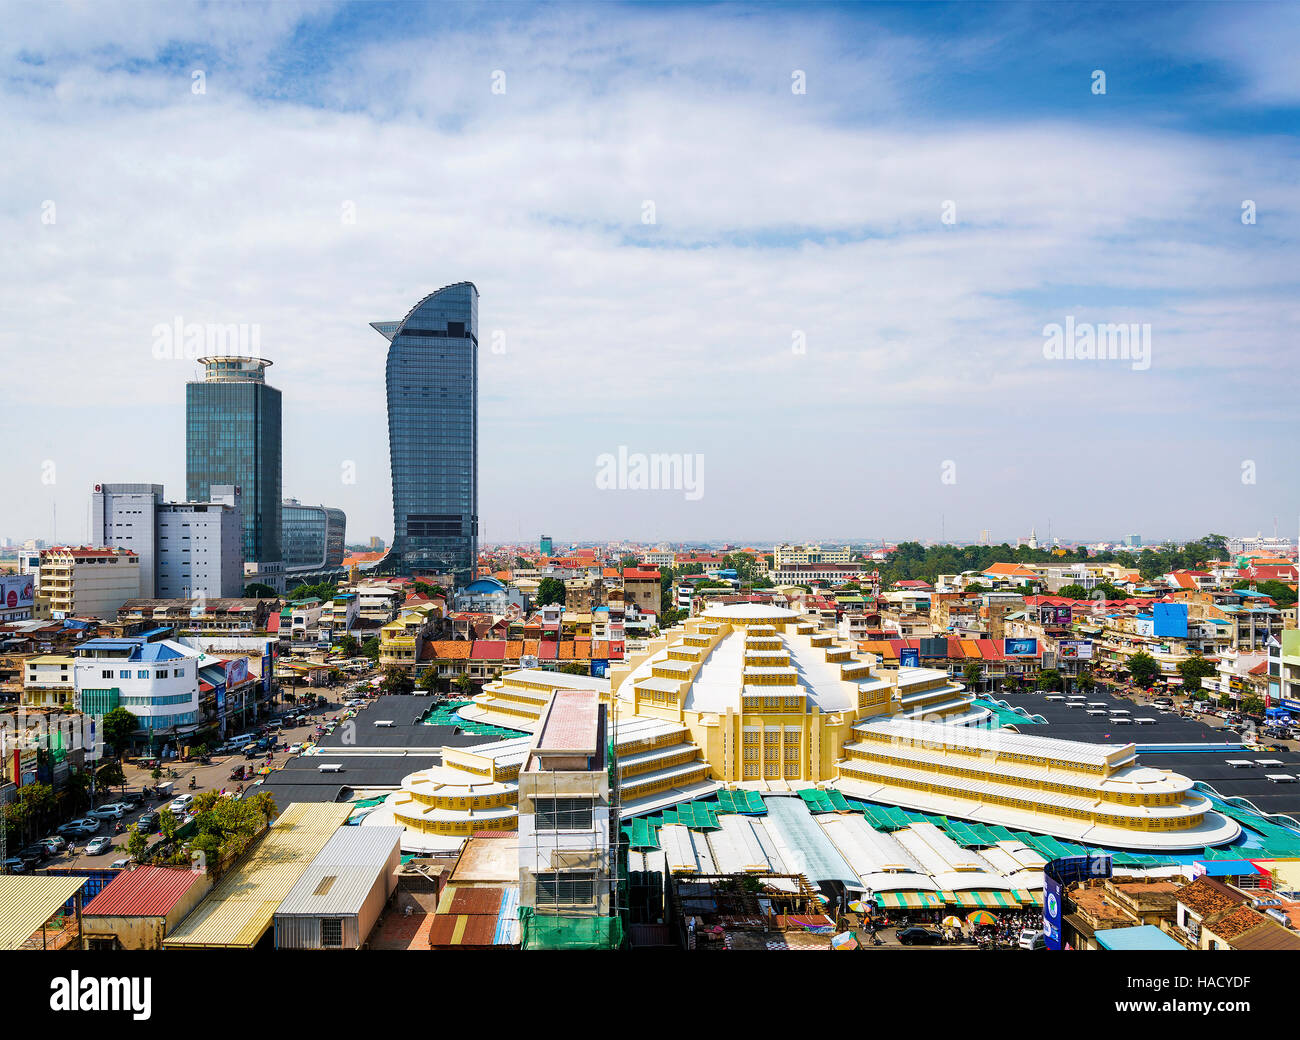 central market landmark and skyscrapers view in phnom penh city cambodia - Stock Image